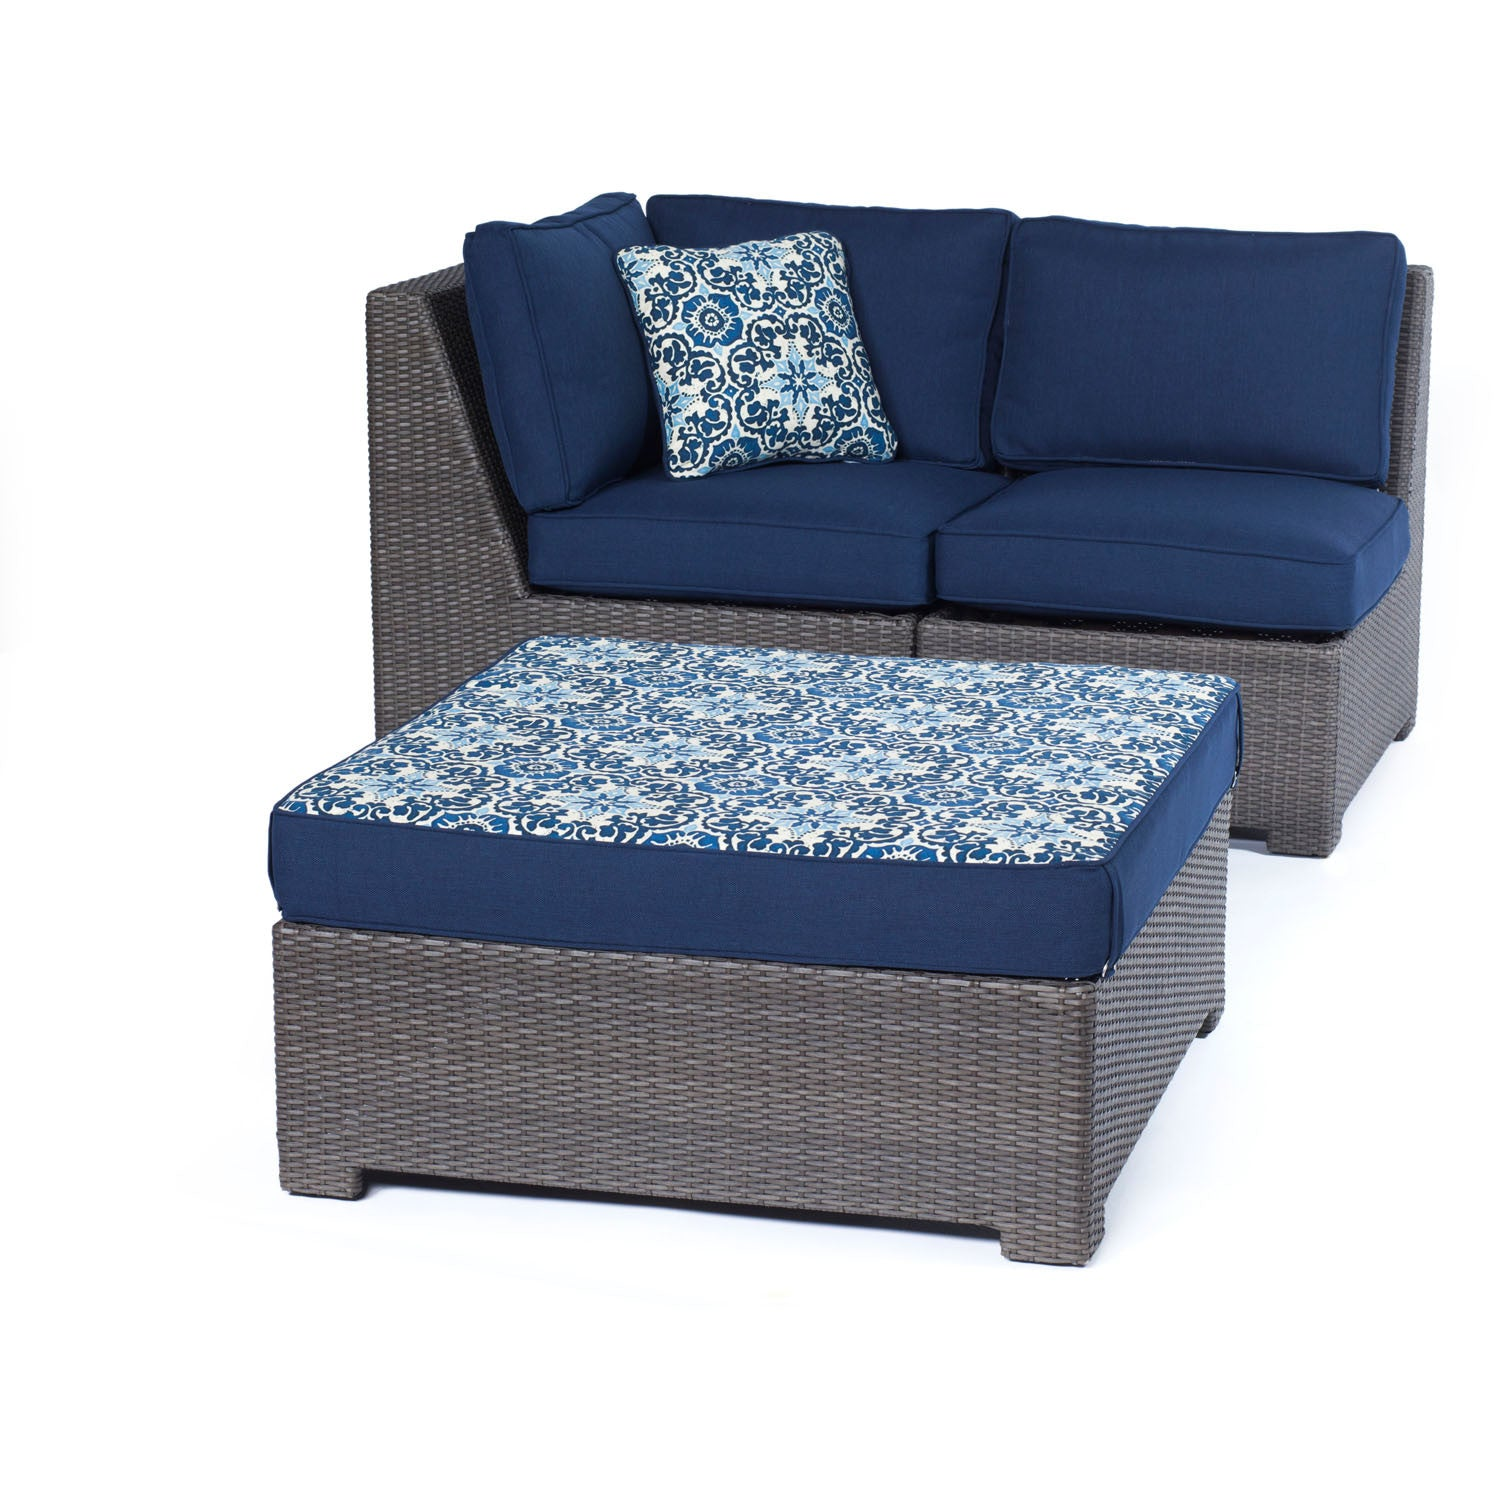 Metro5pc Seating Set: Loveseat, Corner Chair, Armless Chair, Reversible  Ottoman   METRO5PC G NVY   Grey/Navy